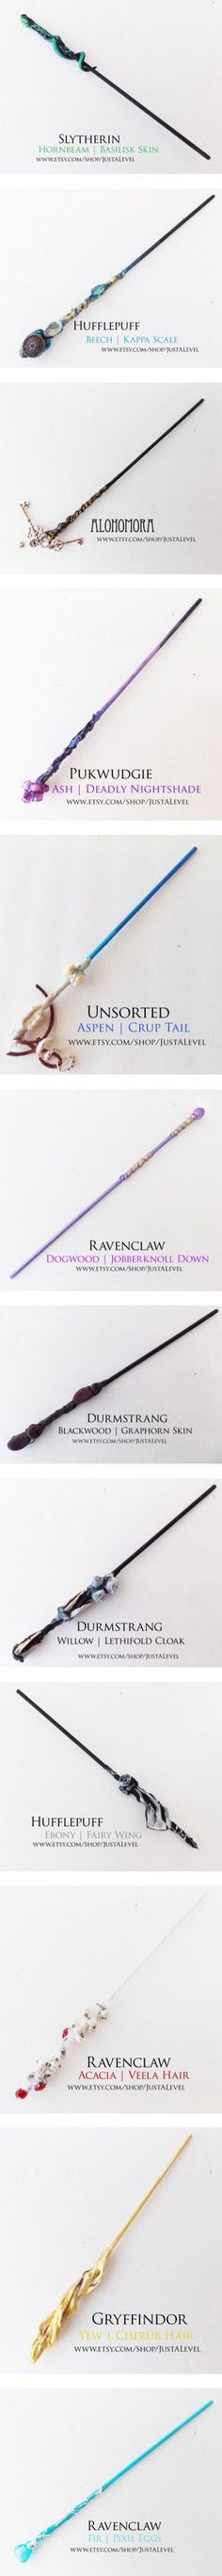 Harry Potter Inspired Wands by grandmasfood on Polyvore featuring beauty products, harry potter, wand, wands, accessories, ravenclaw wand, gryffindor wand, haircare, hair styling tools and handmade ho